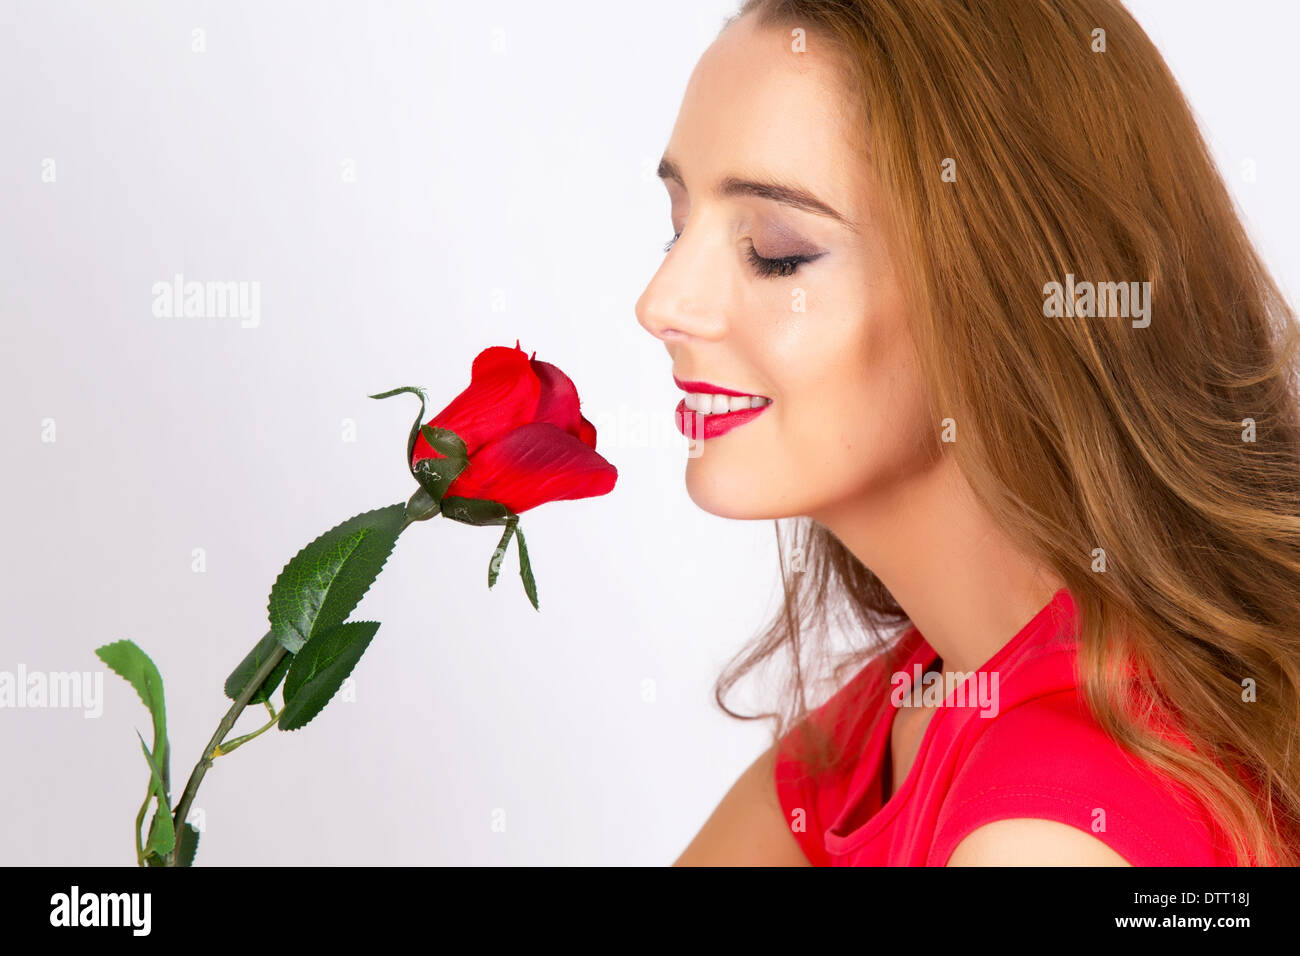 Lady received a single red rose - Stock Image